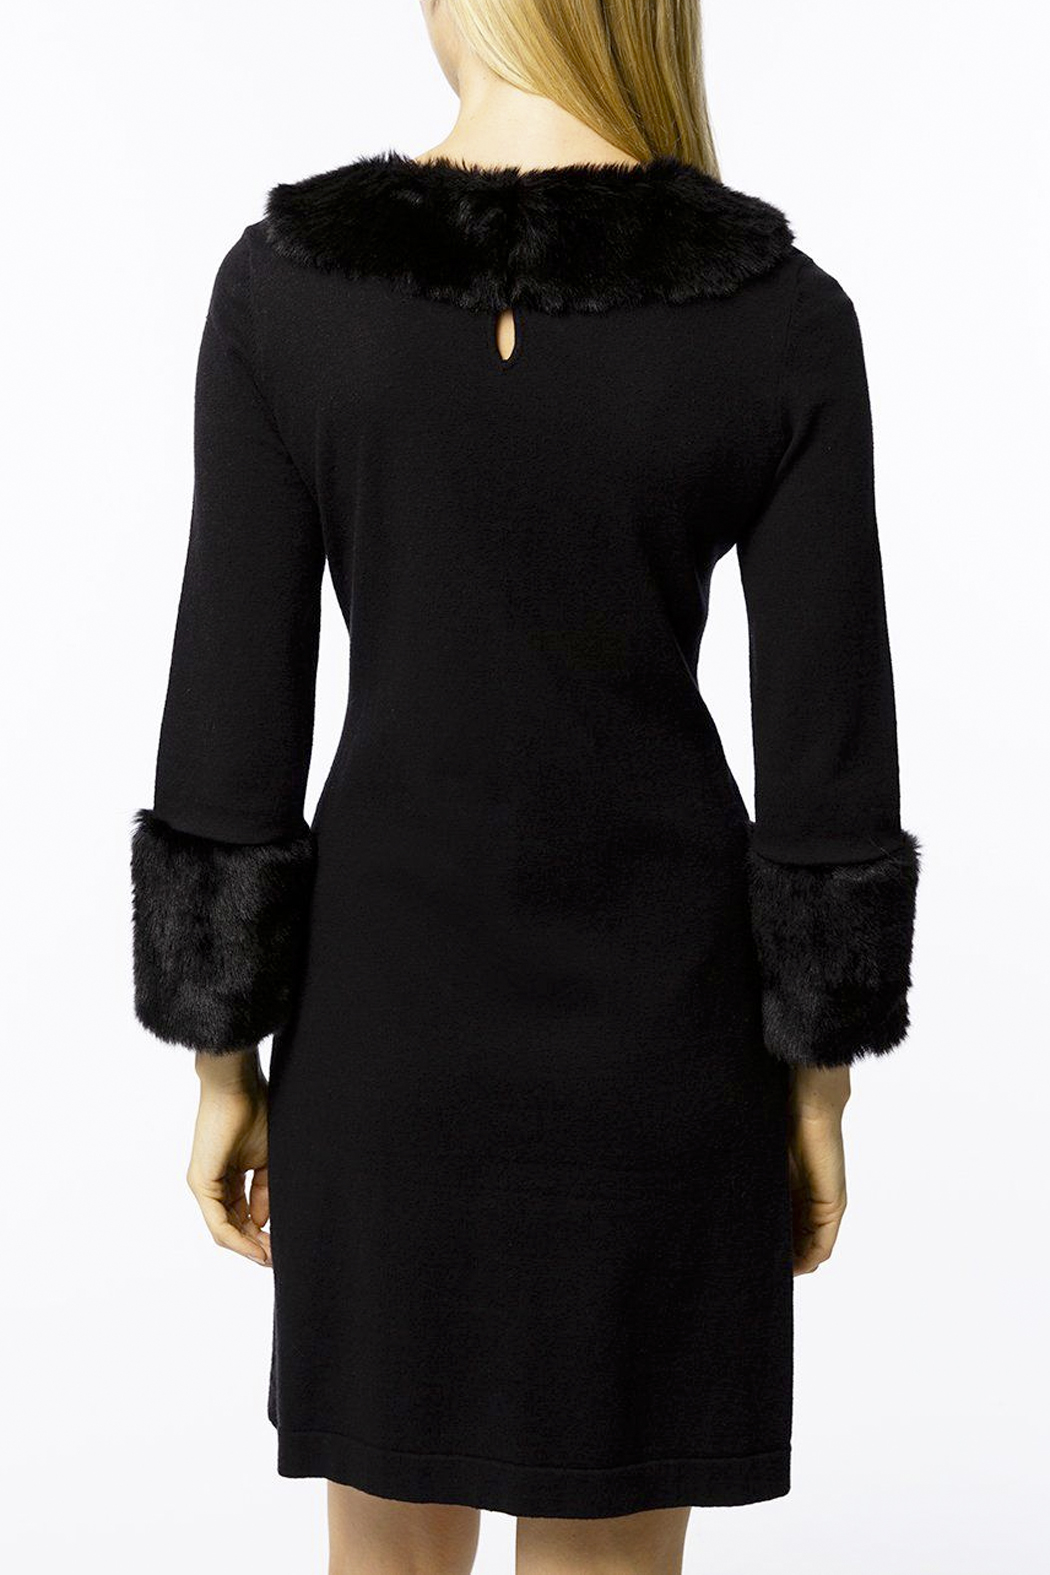 Tyler Boe Chelsey Cotton/Cashmere Dress with Faux Fur - Front Full Image